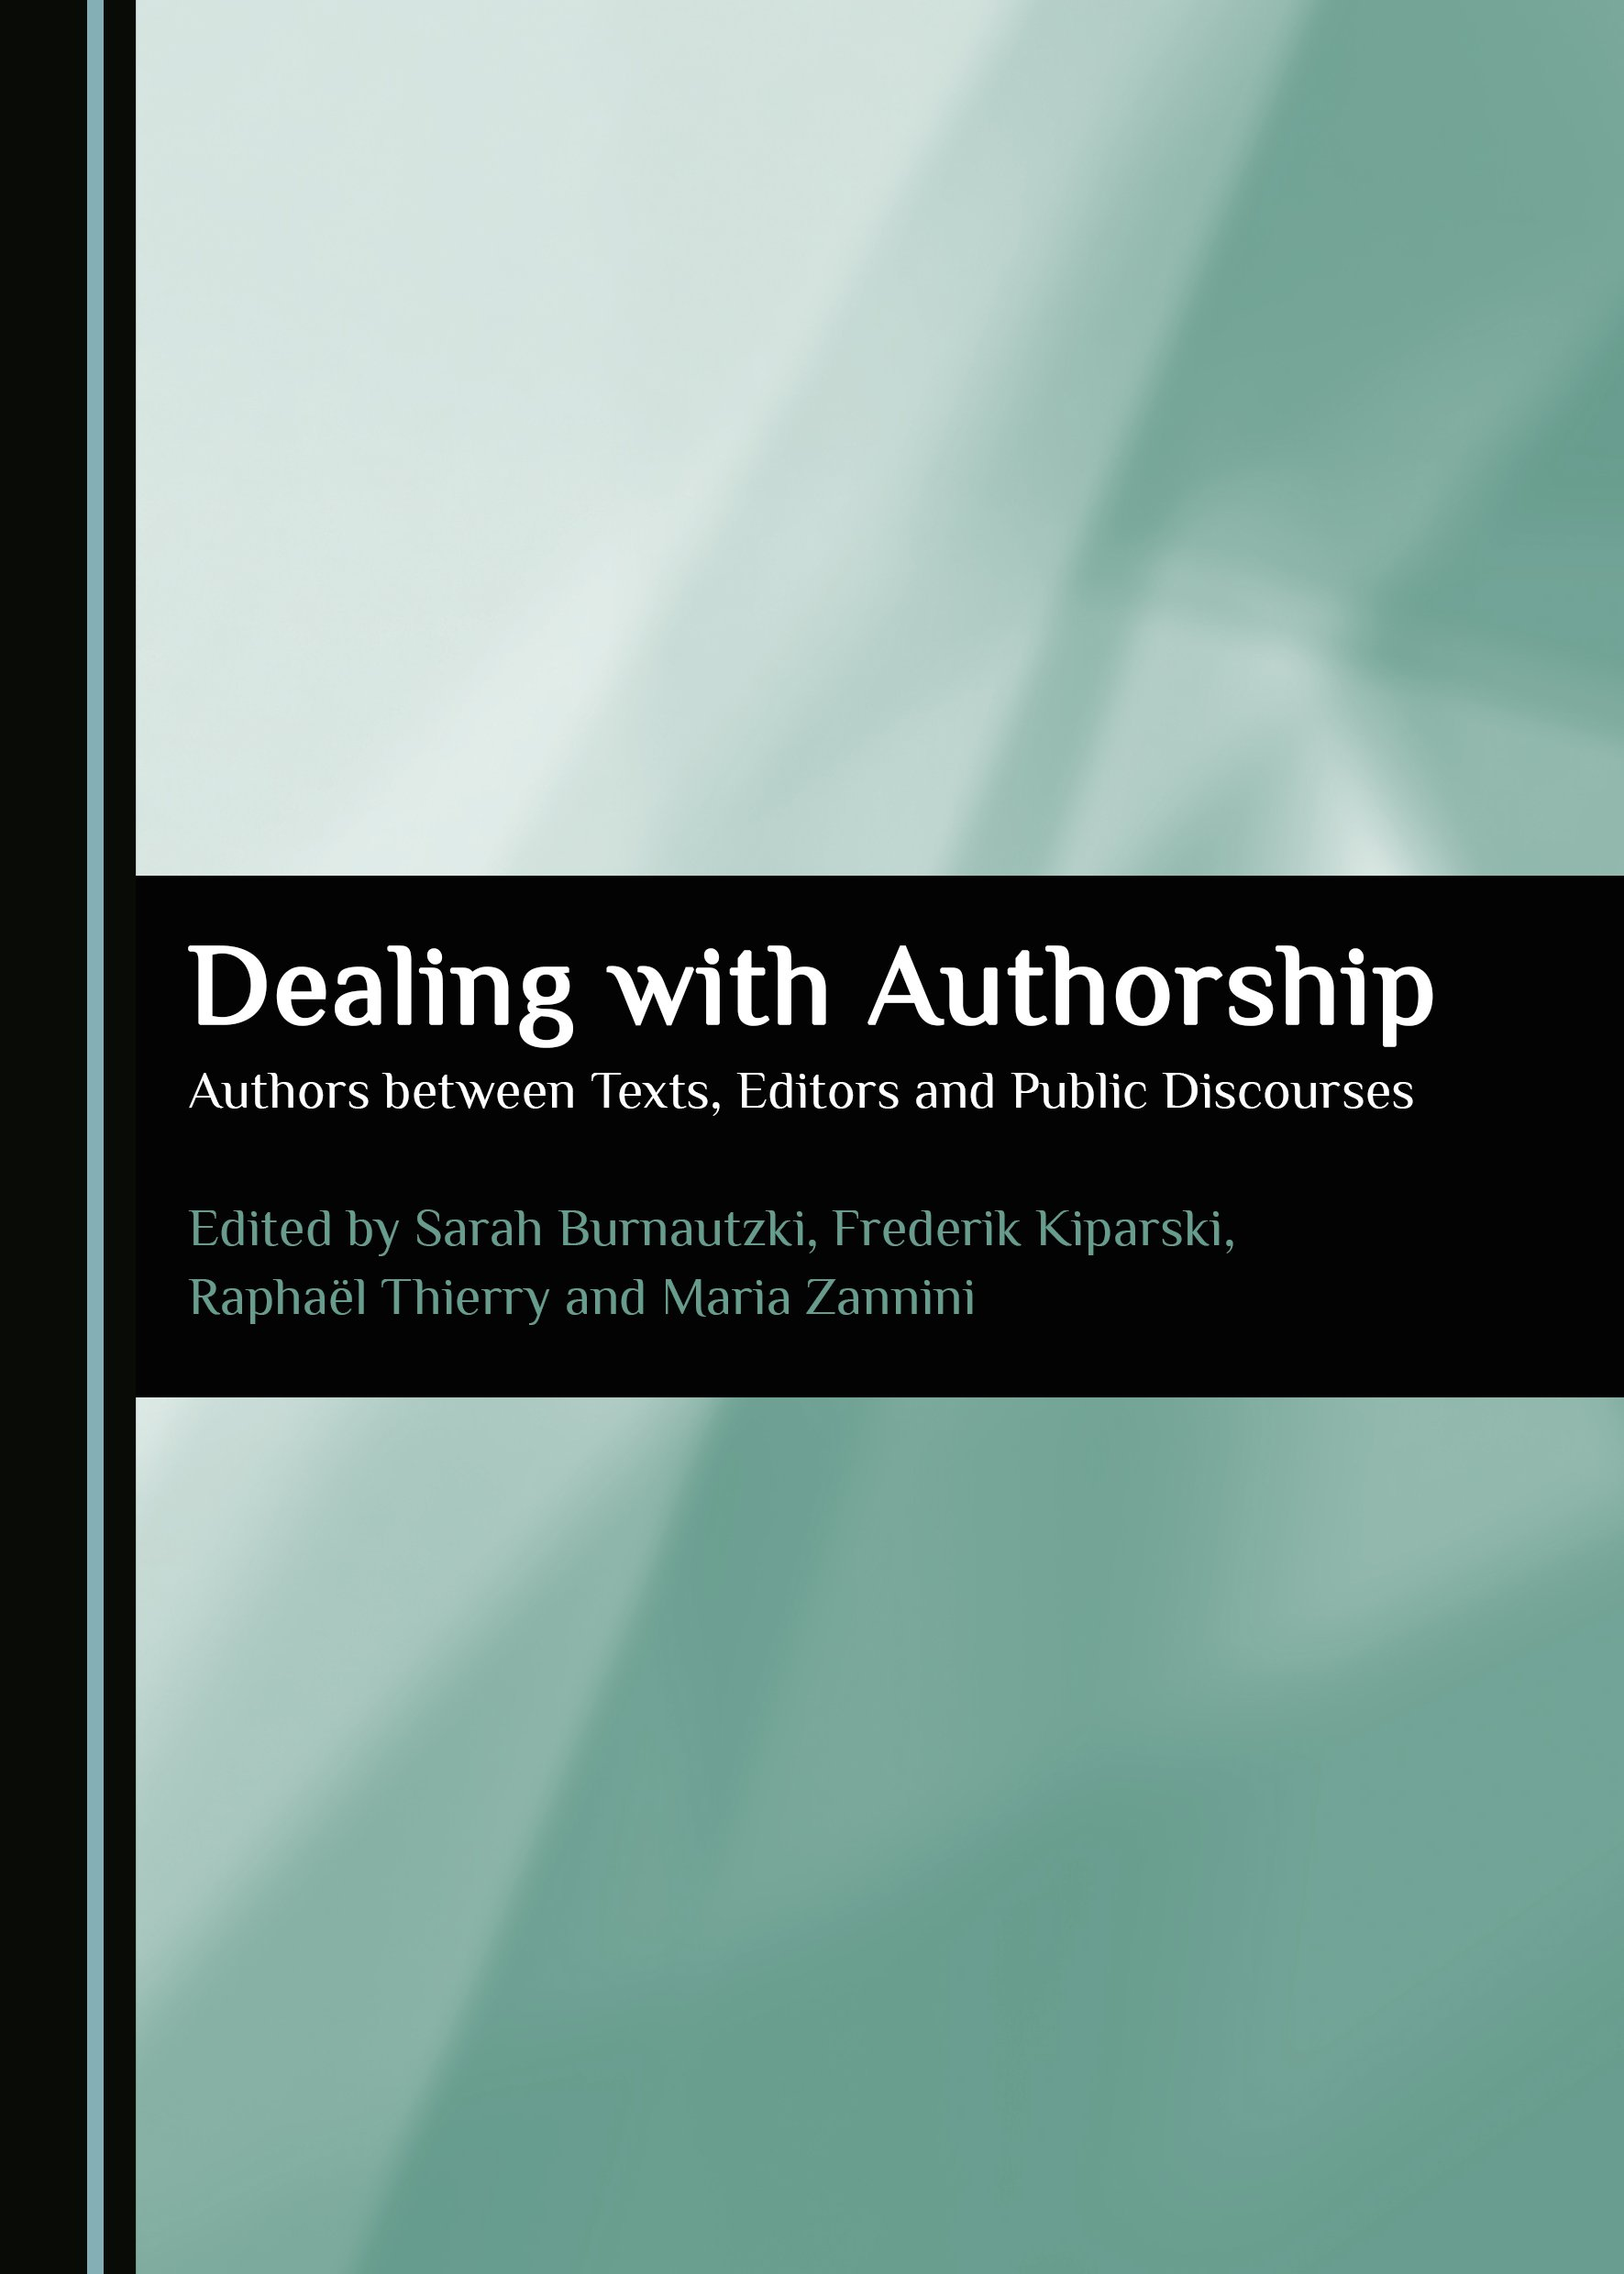 Dealing with Authorship: Authors between Texts, Editors and Public Discourses